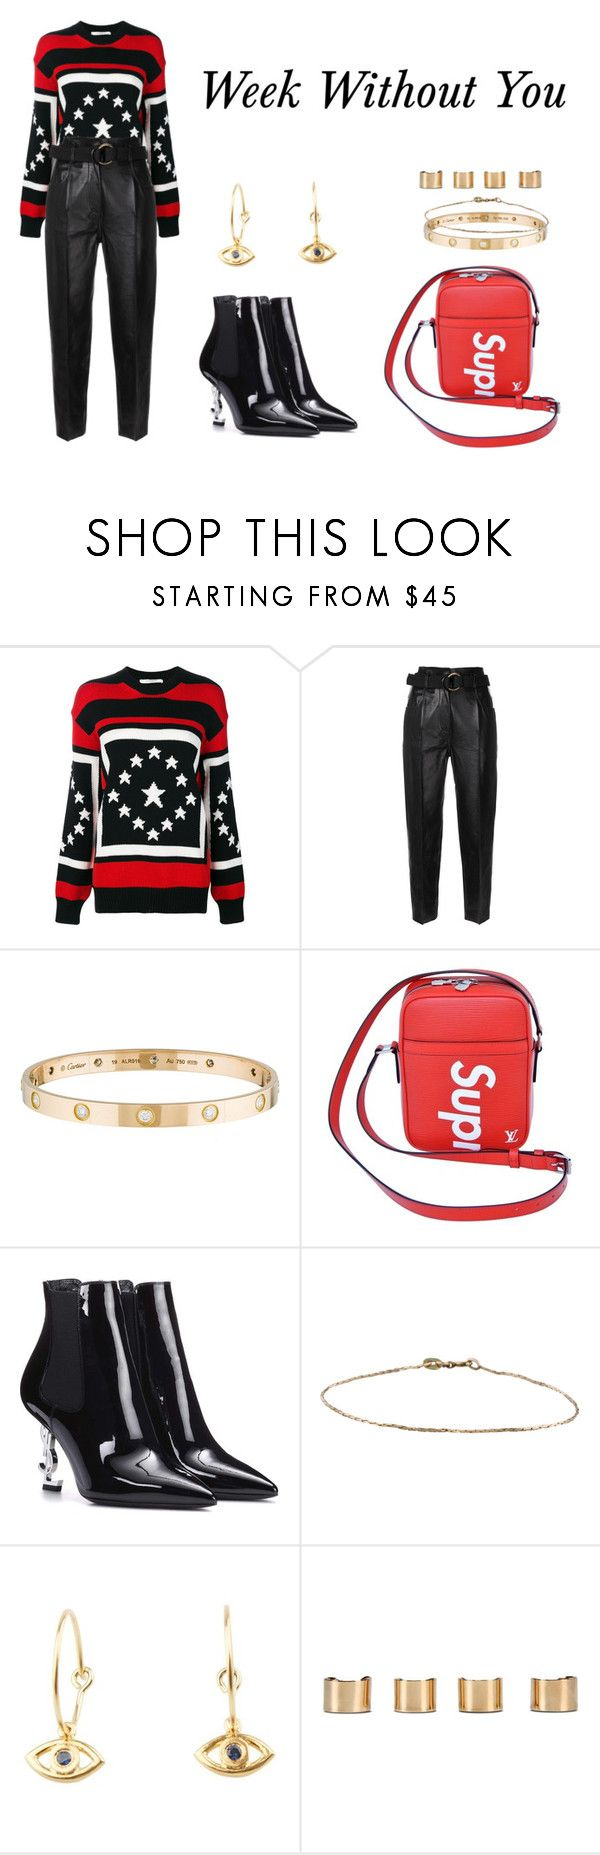 """Week Without You"" by anaelle2 ❤ liked on Polyvore featuring Givenchy, Petar Petrov, Cartier, Supreme, Yves Saint Laurent, Ileana Makri and Maison Margiela"